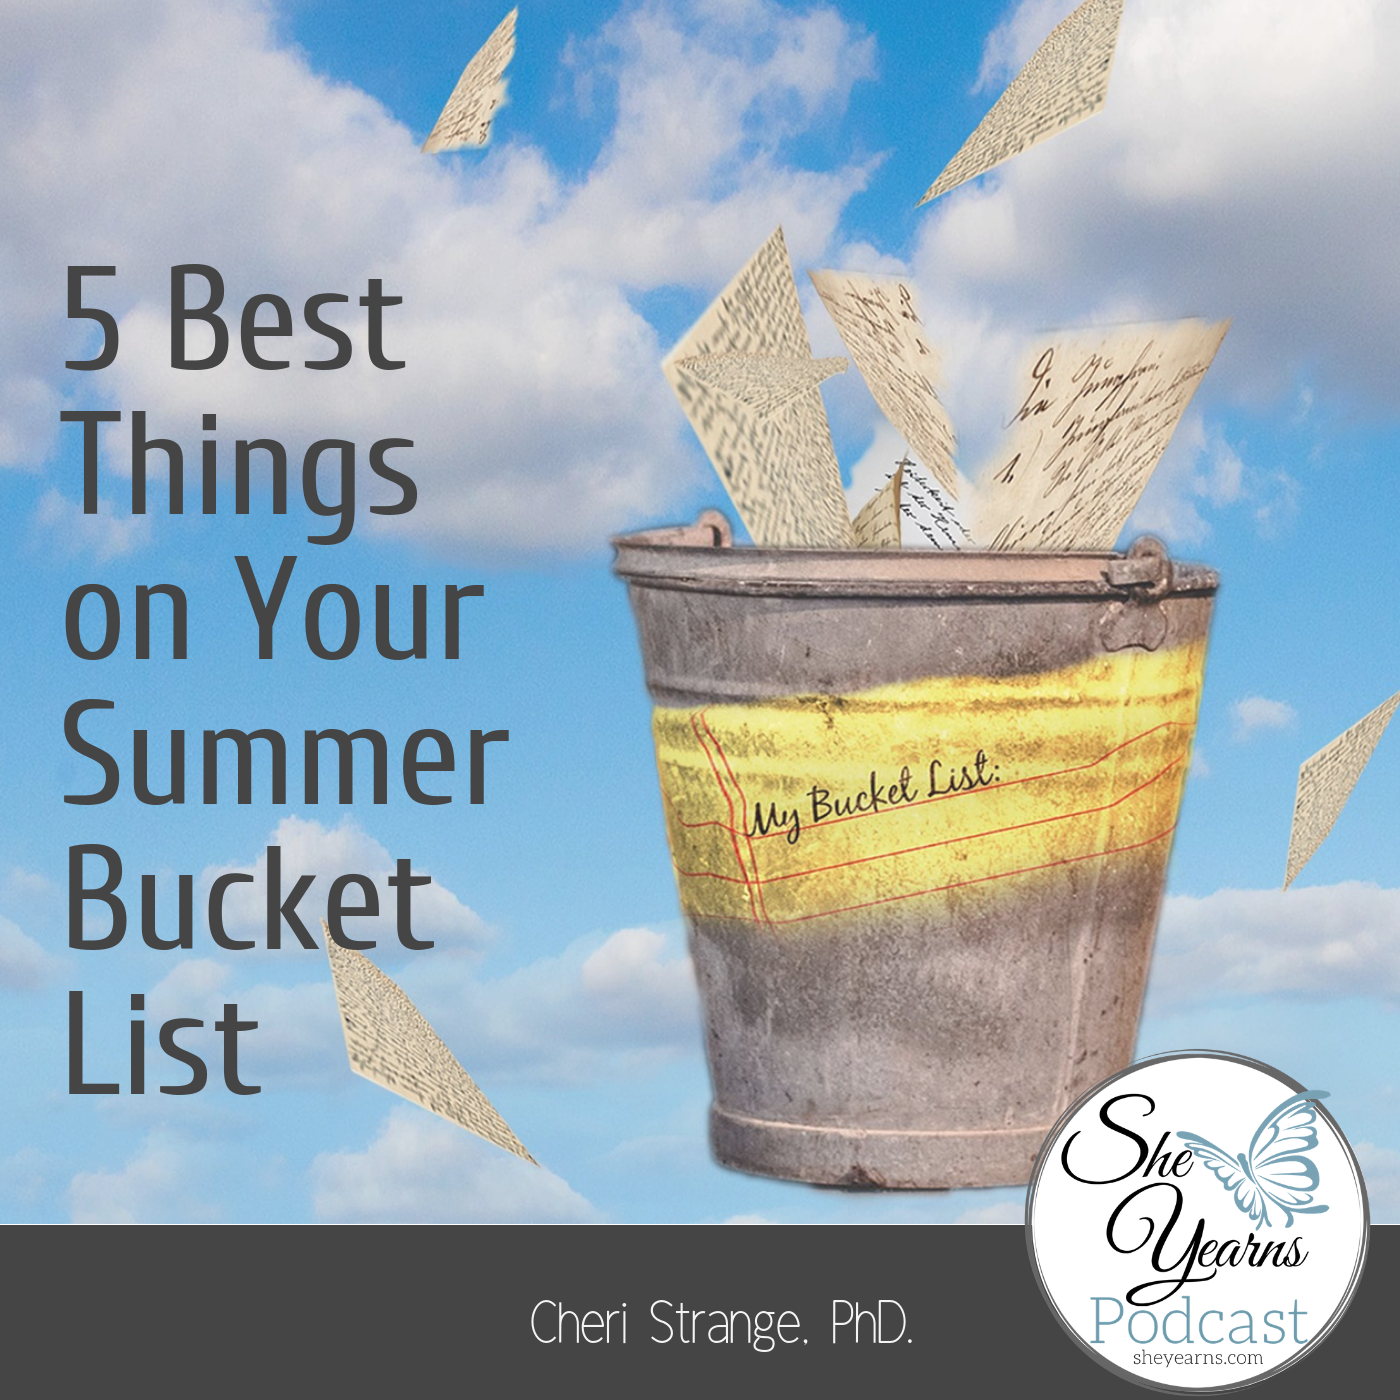 5 Best things on your summer bucket list